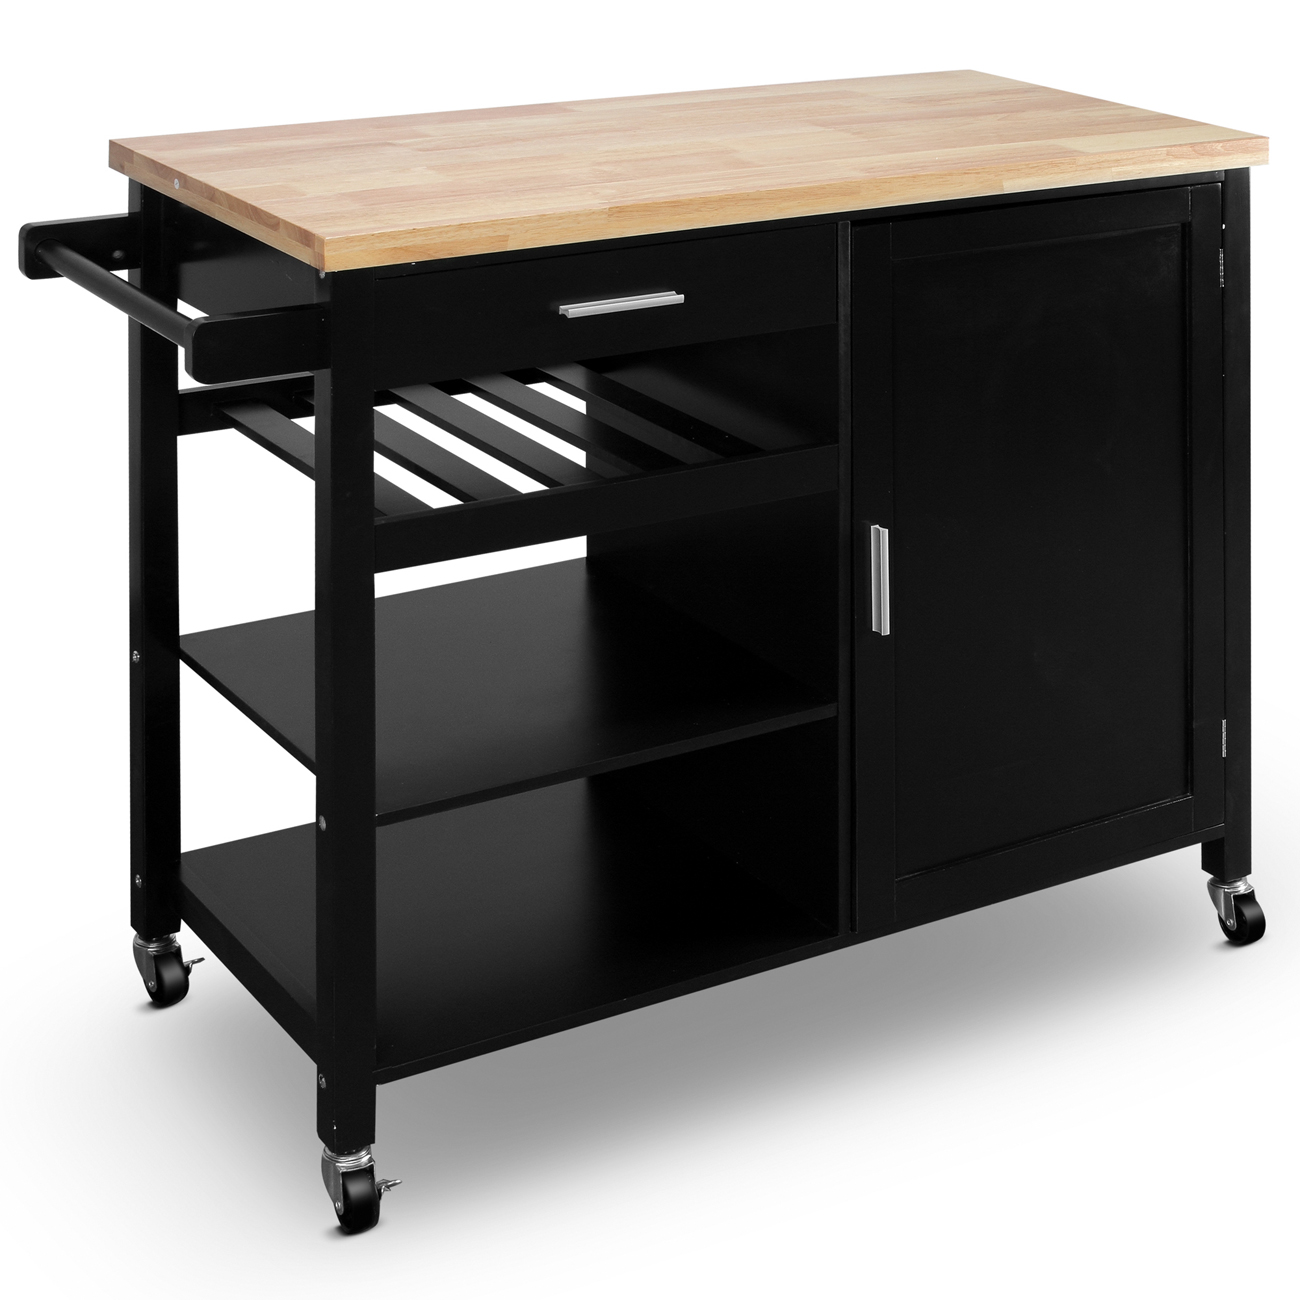 Belleze Wood Top Multi Storage Cabinet Rolling Kitchen Island Table Cart With Wheels Black